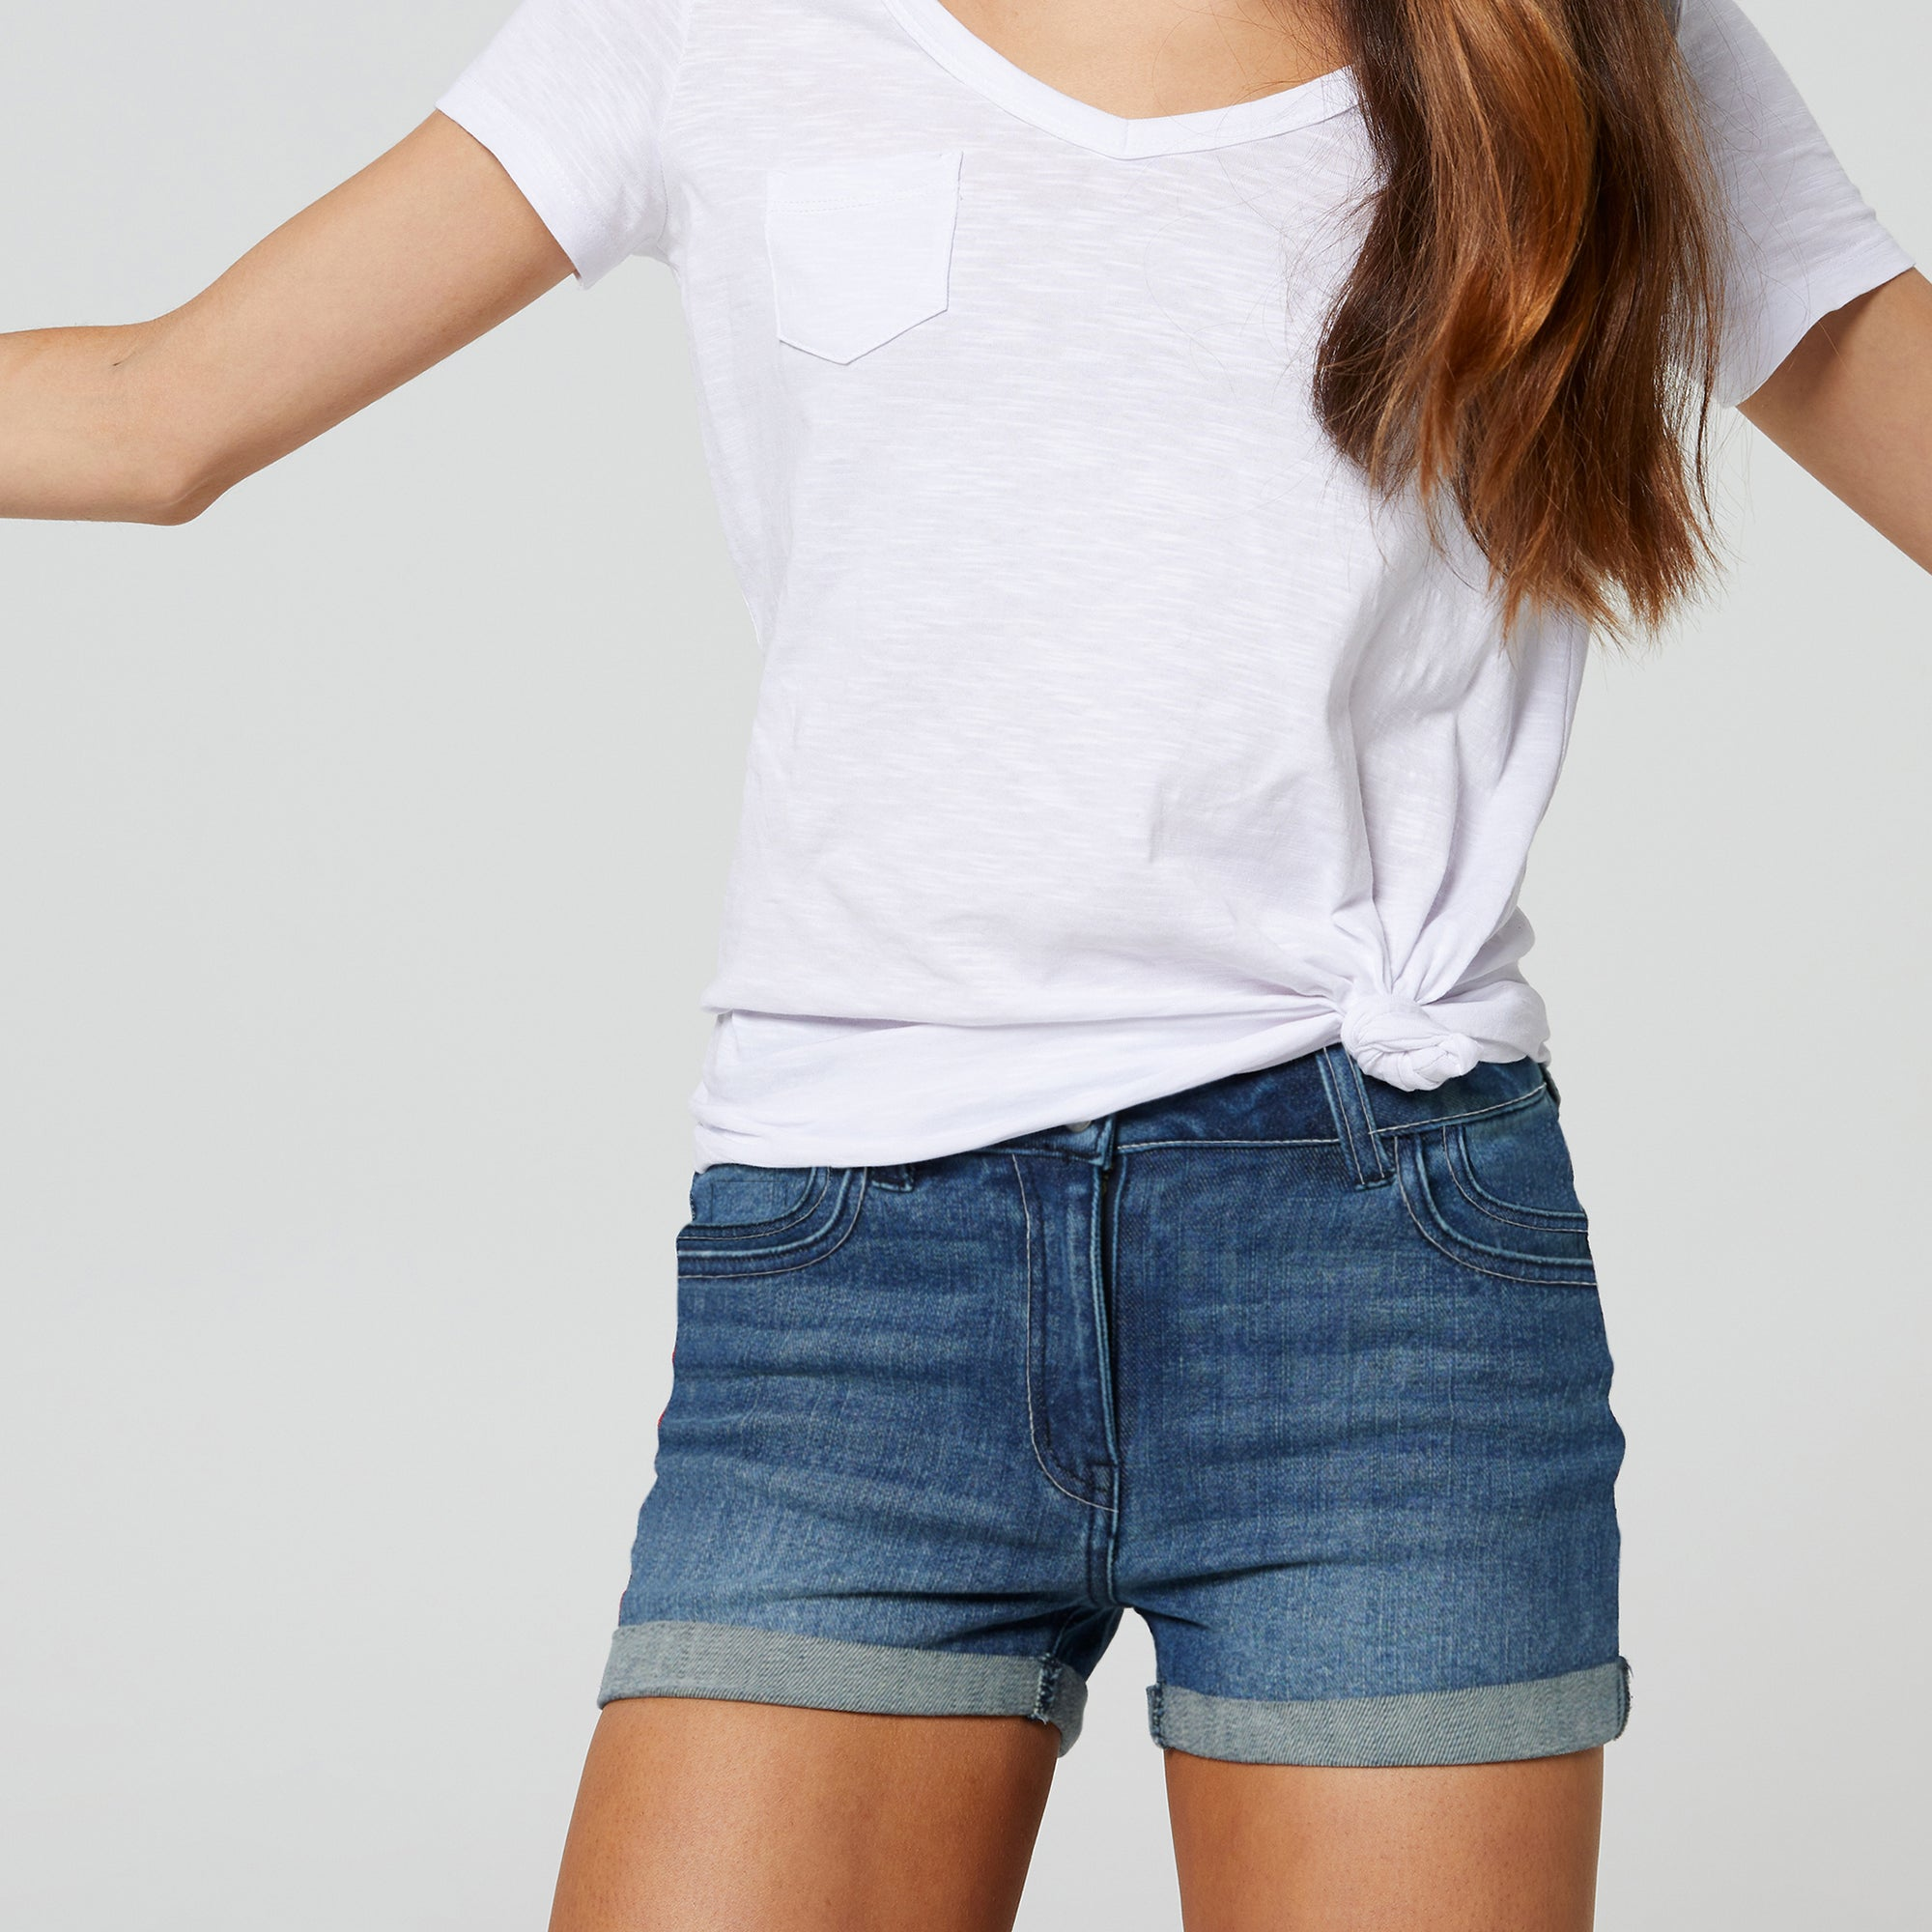 brandsego - SHORT Denim Short For Girls-Blue Faded-BE7069